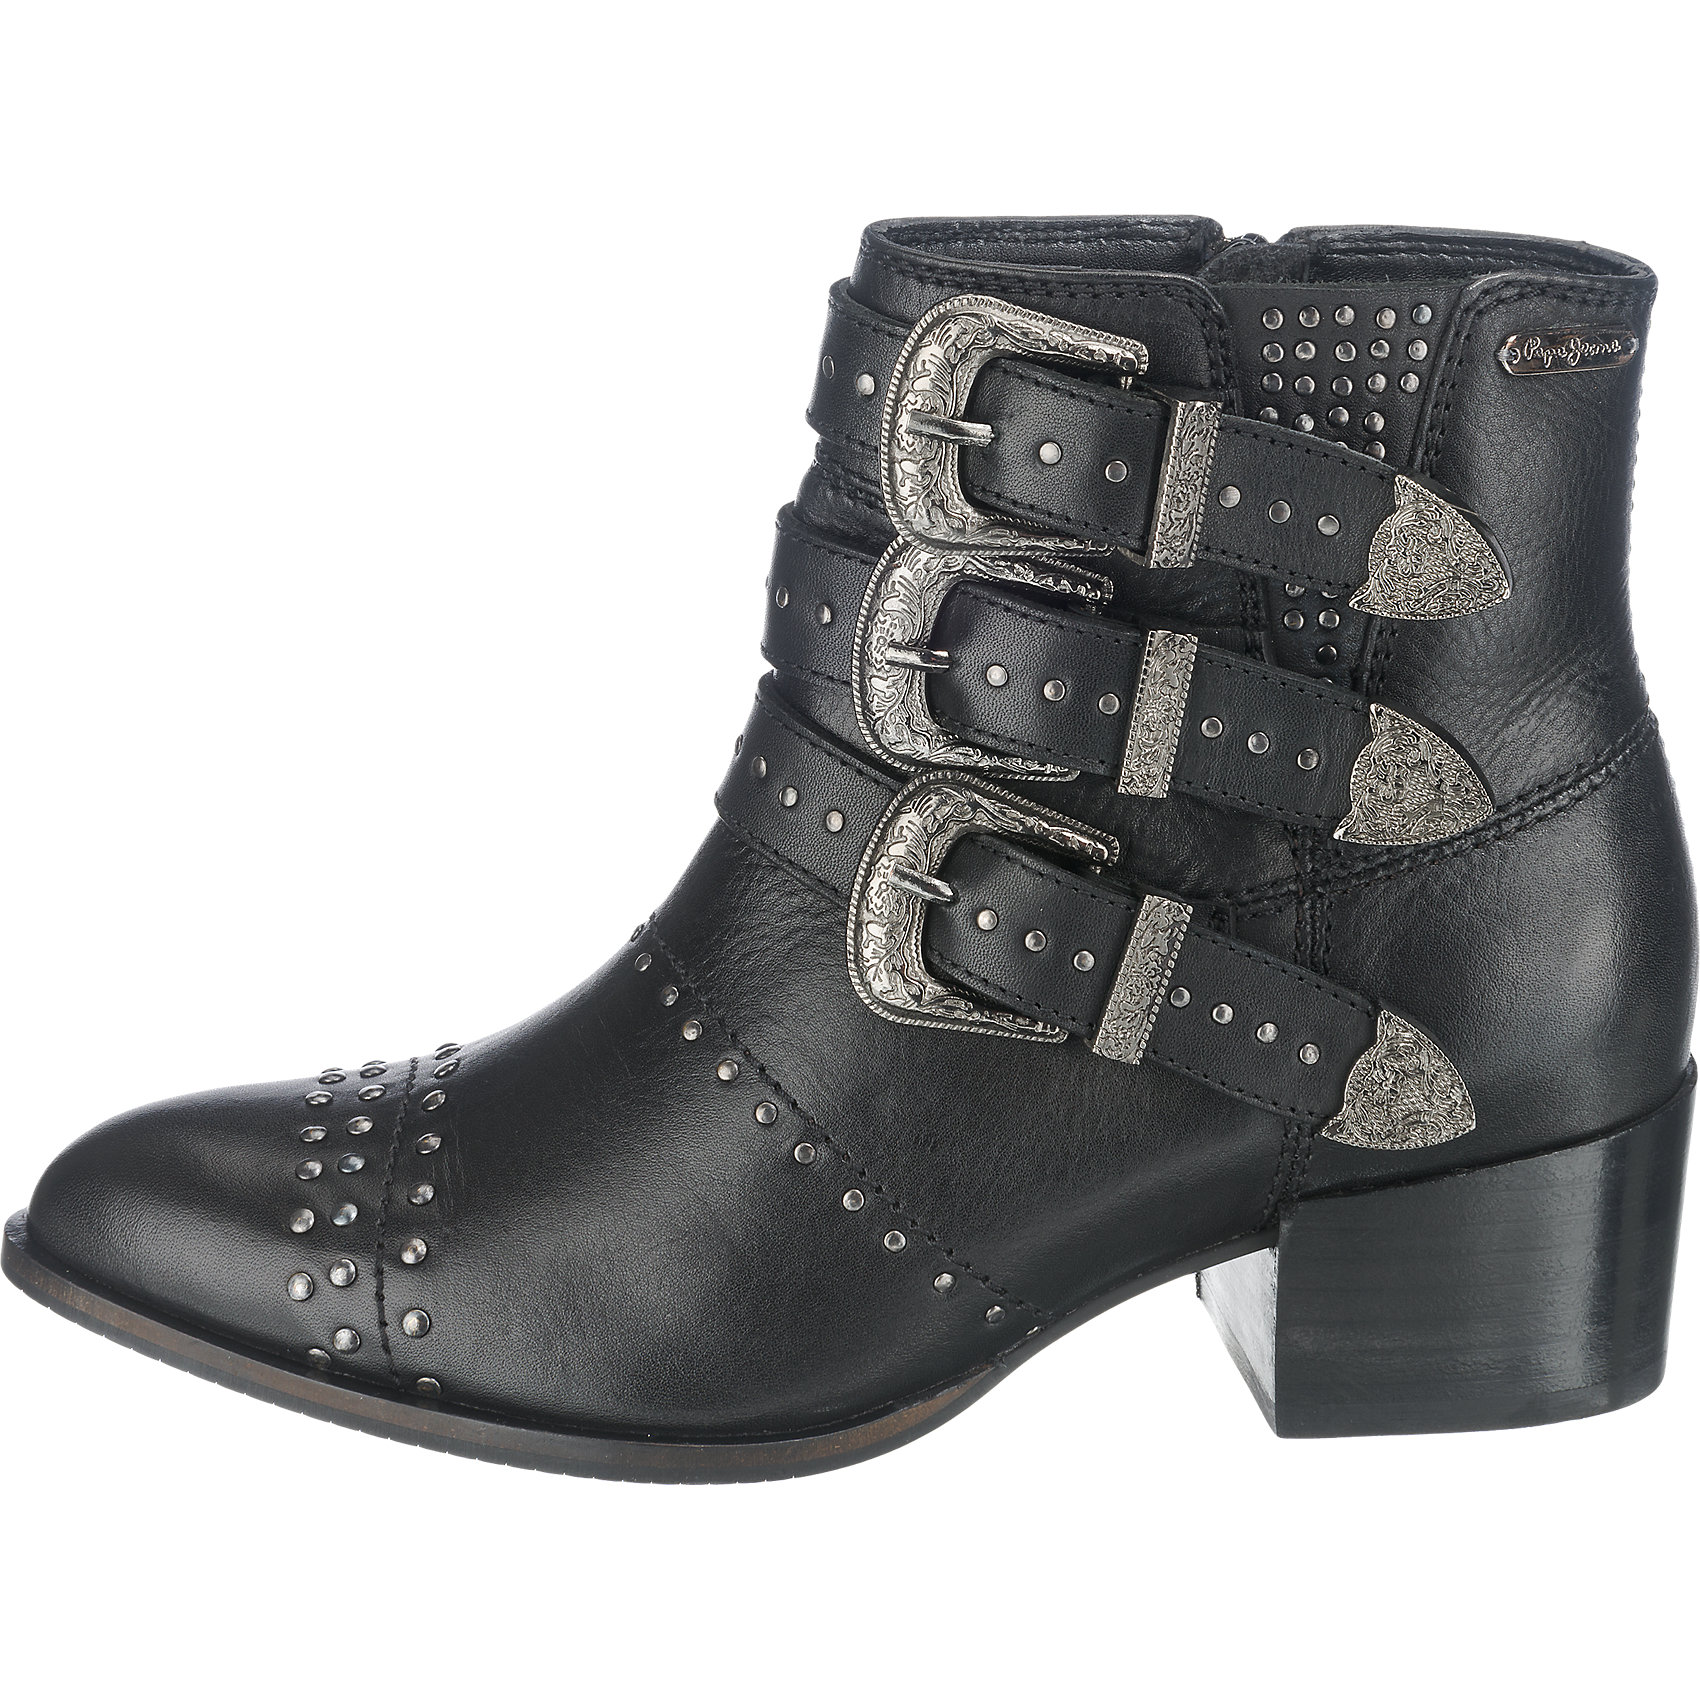 neu pepe jeans waterloo rock stiefeletten 5777531 f r damen schwarz ebay. Black Bedroom Furniture Sets. Home Design Ideas